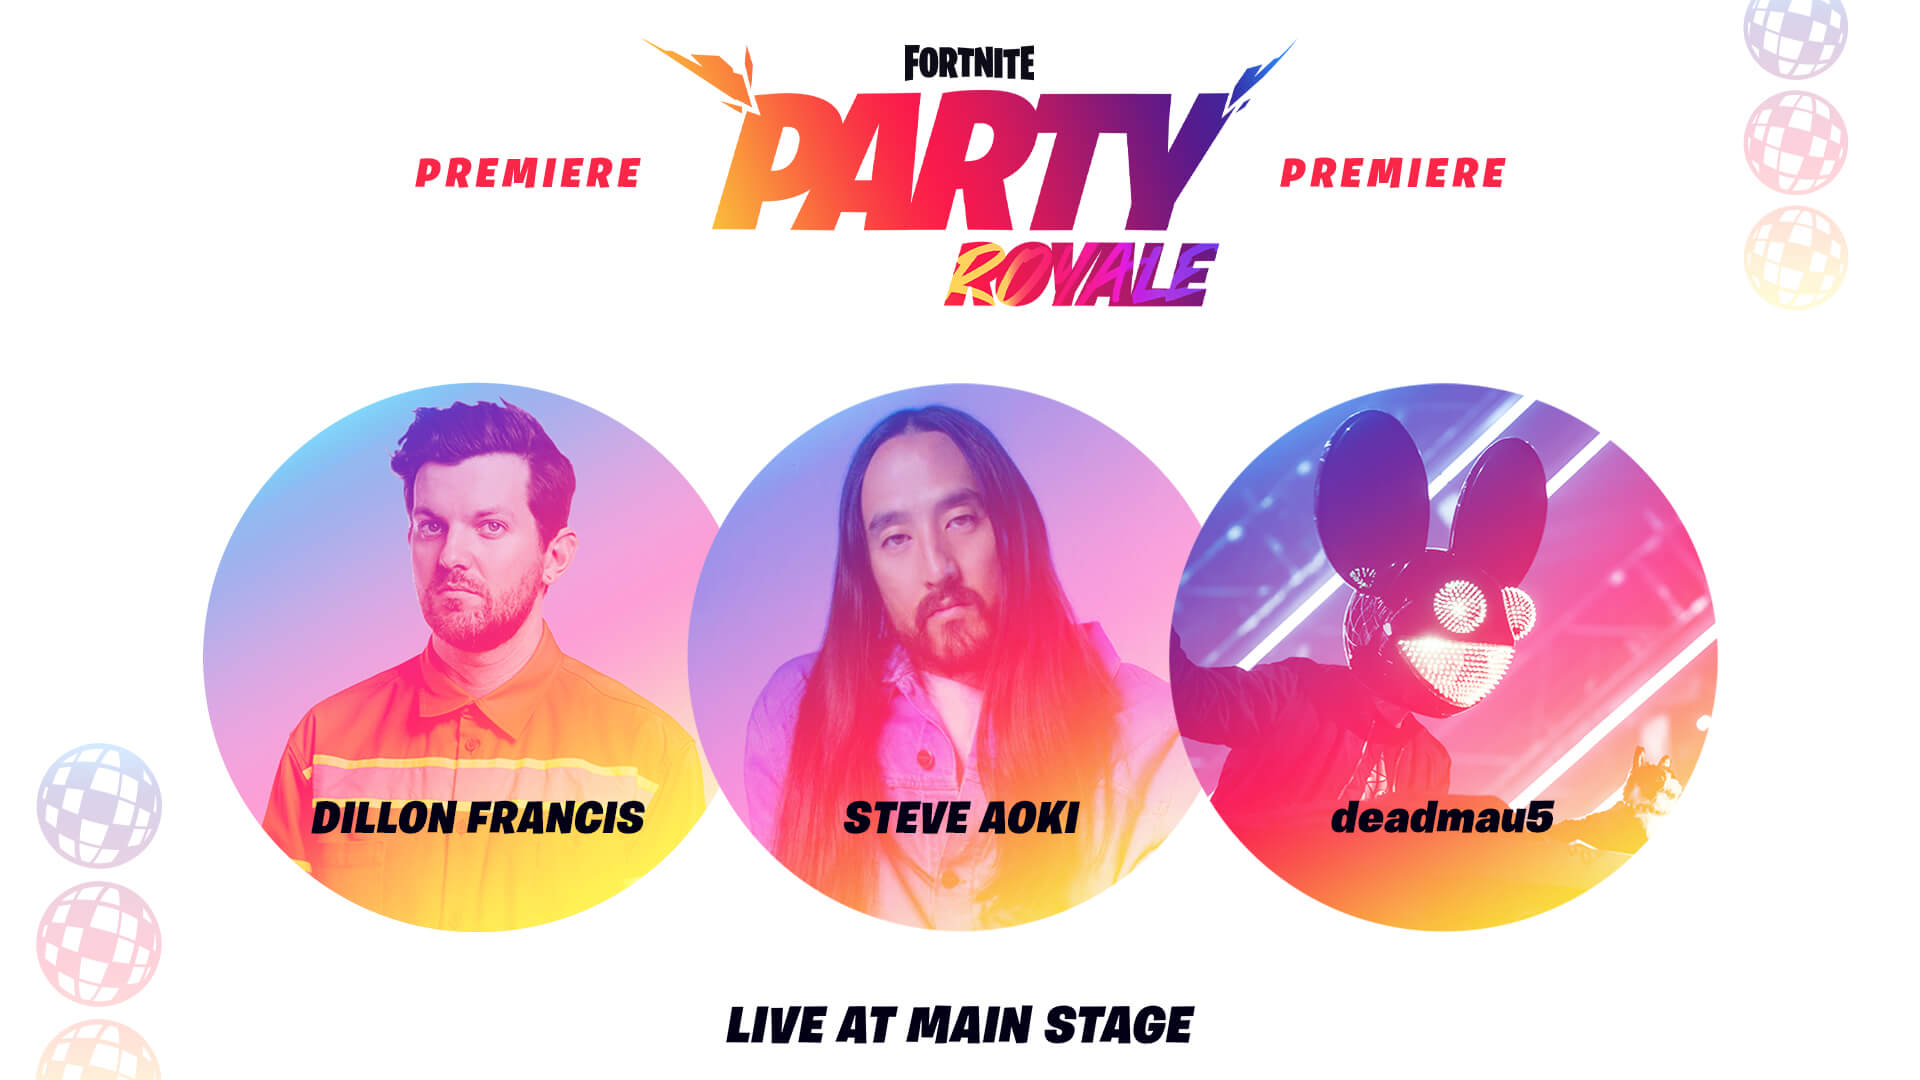 Fortnite Party Royale Premiere goes live May 8